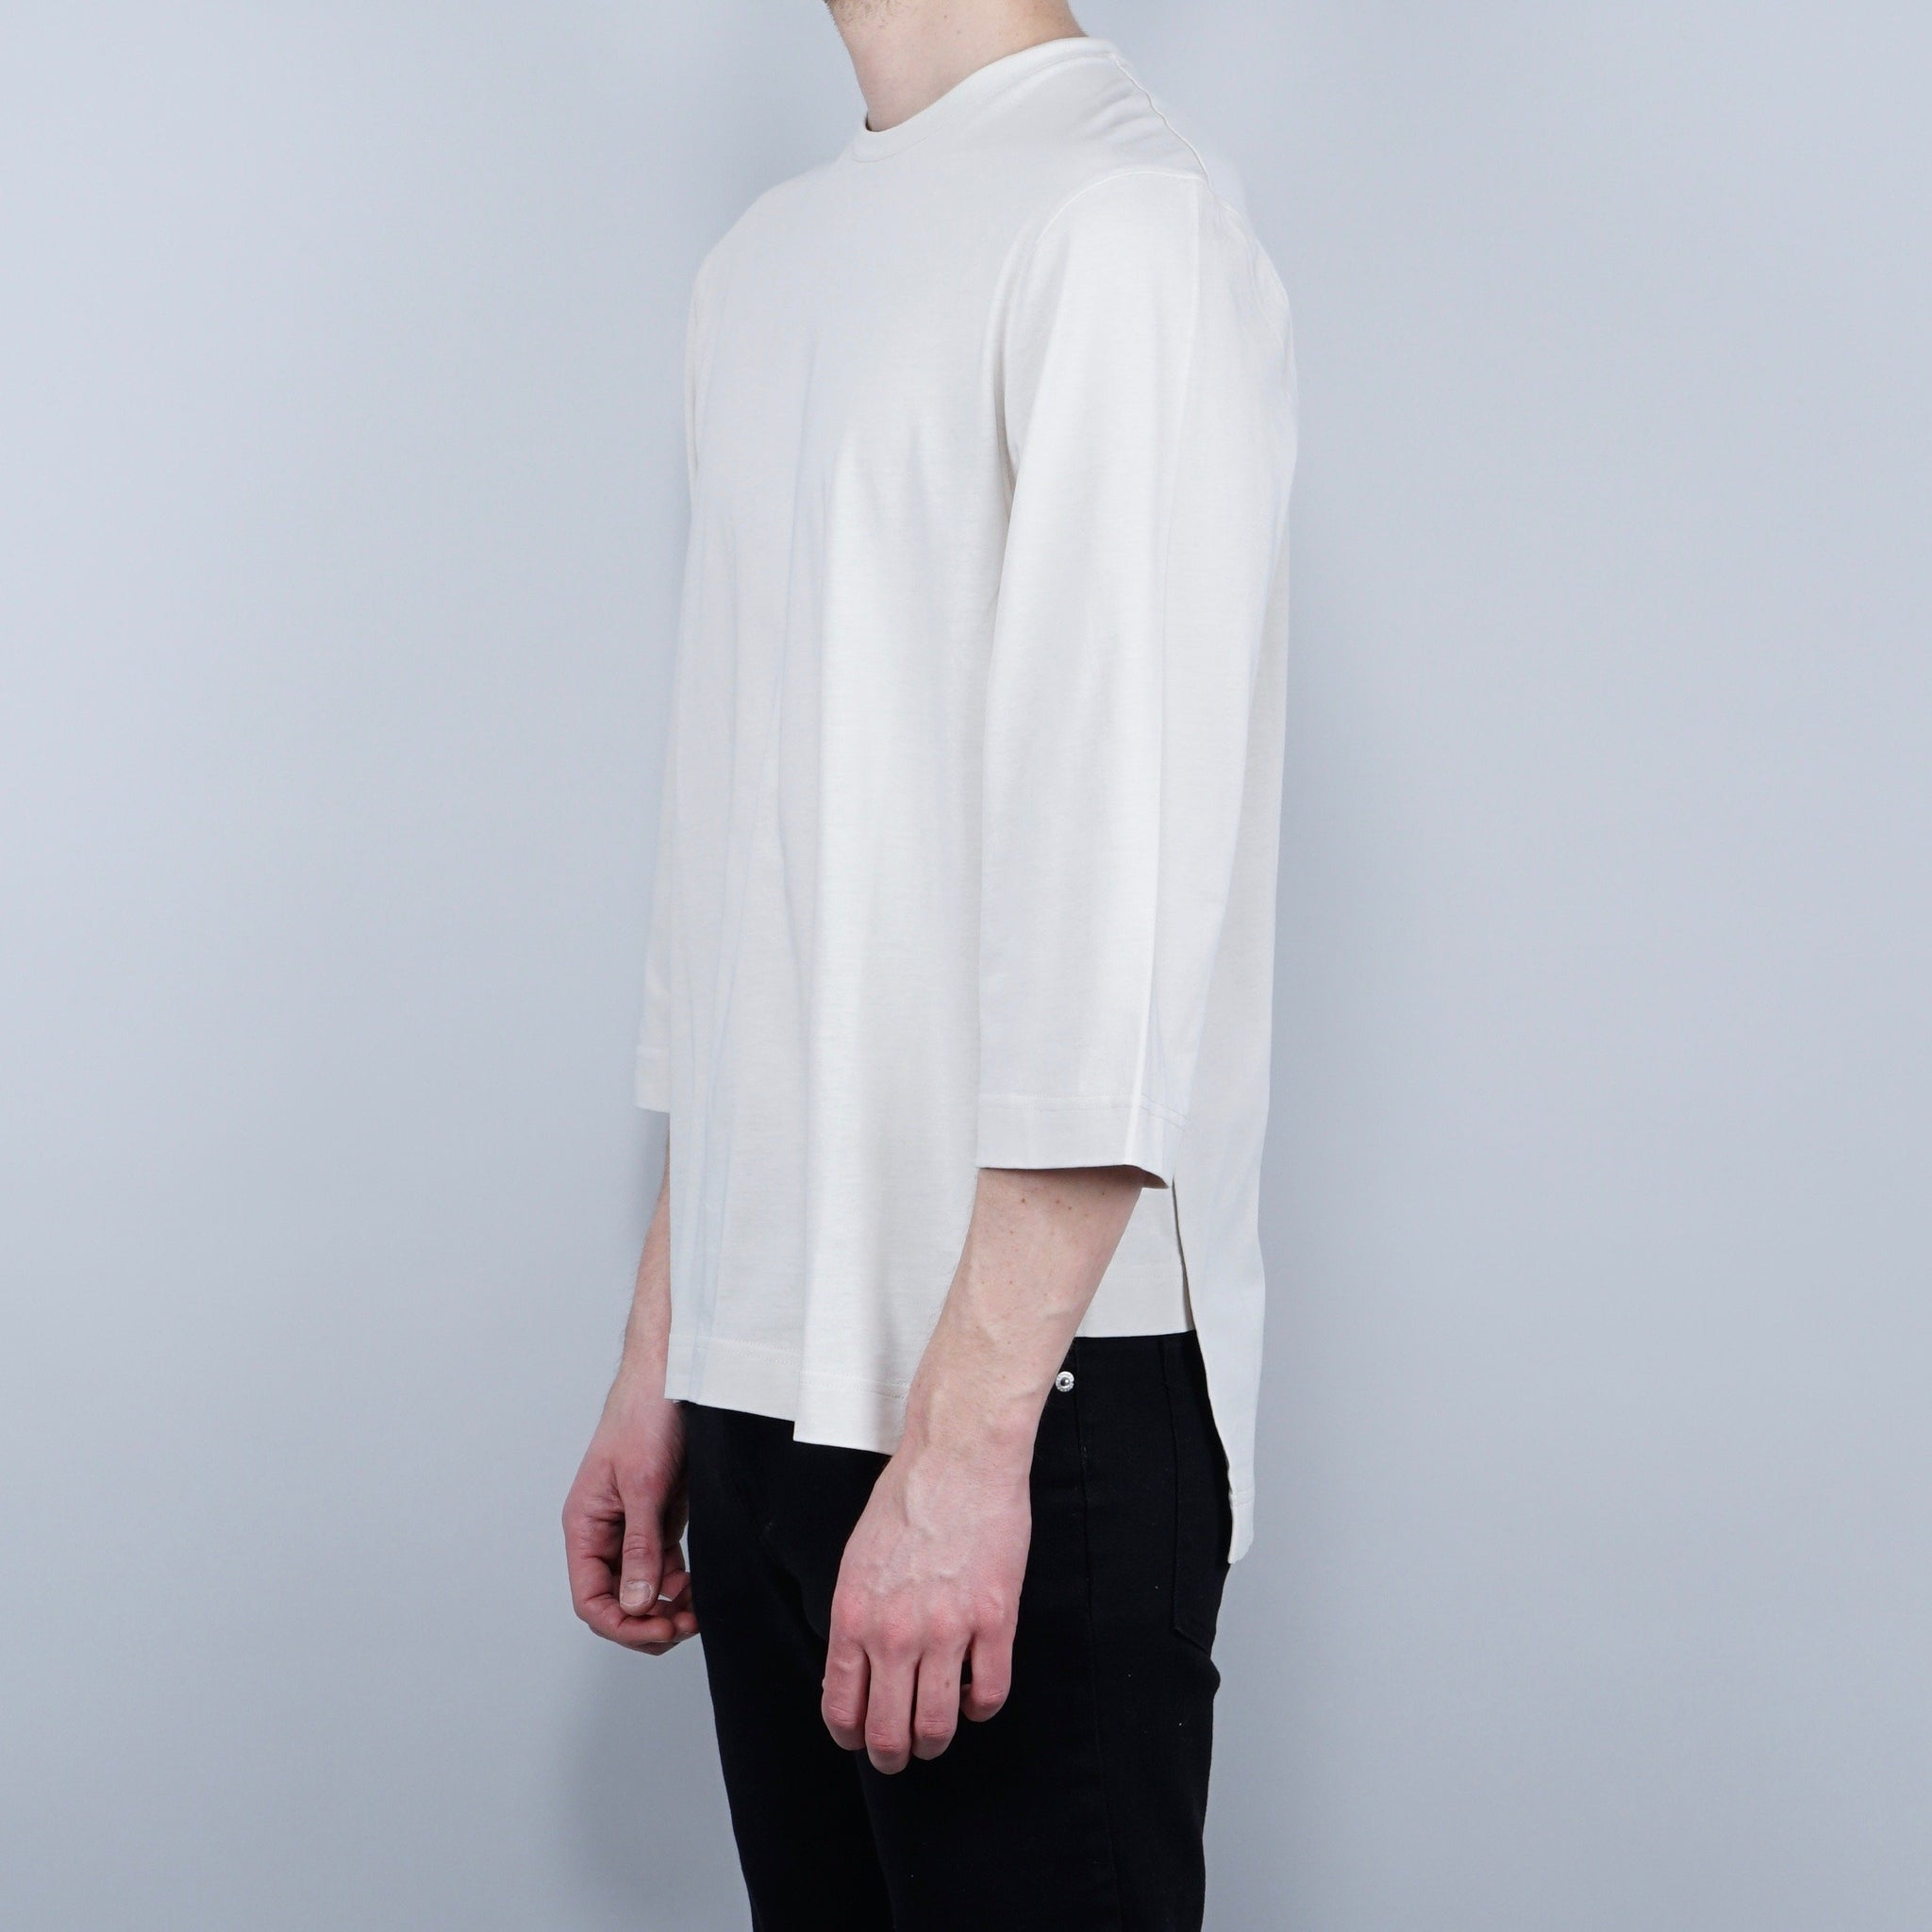 Coltesse Orla T-shirt - Cream